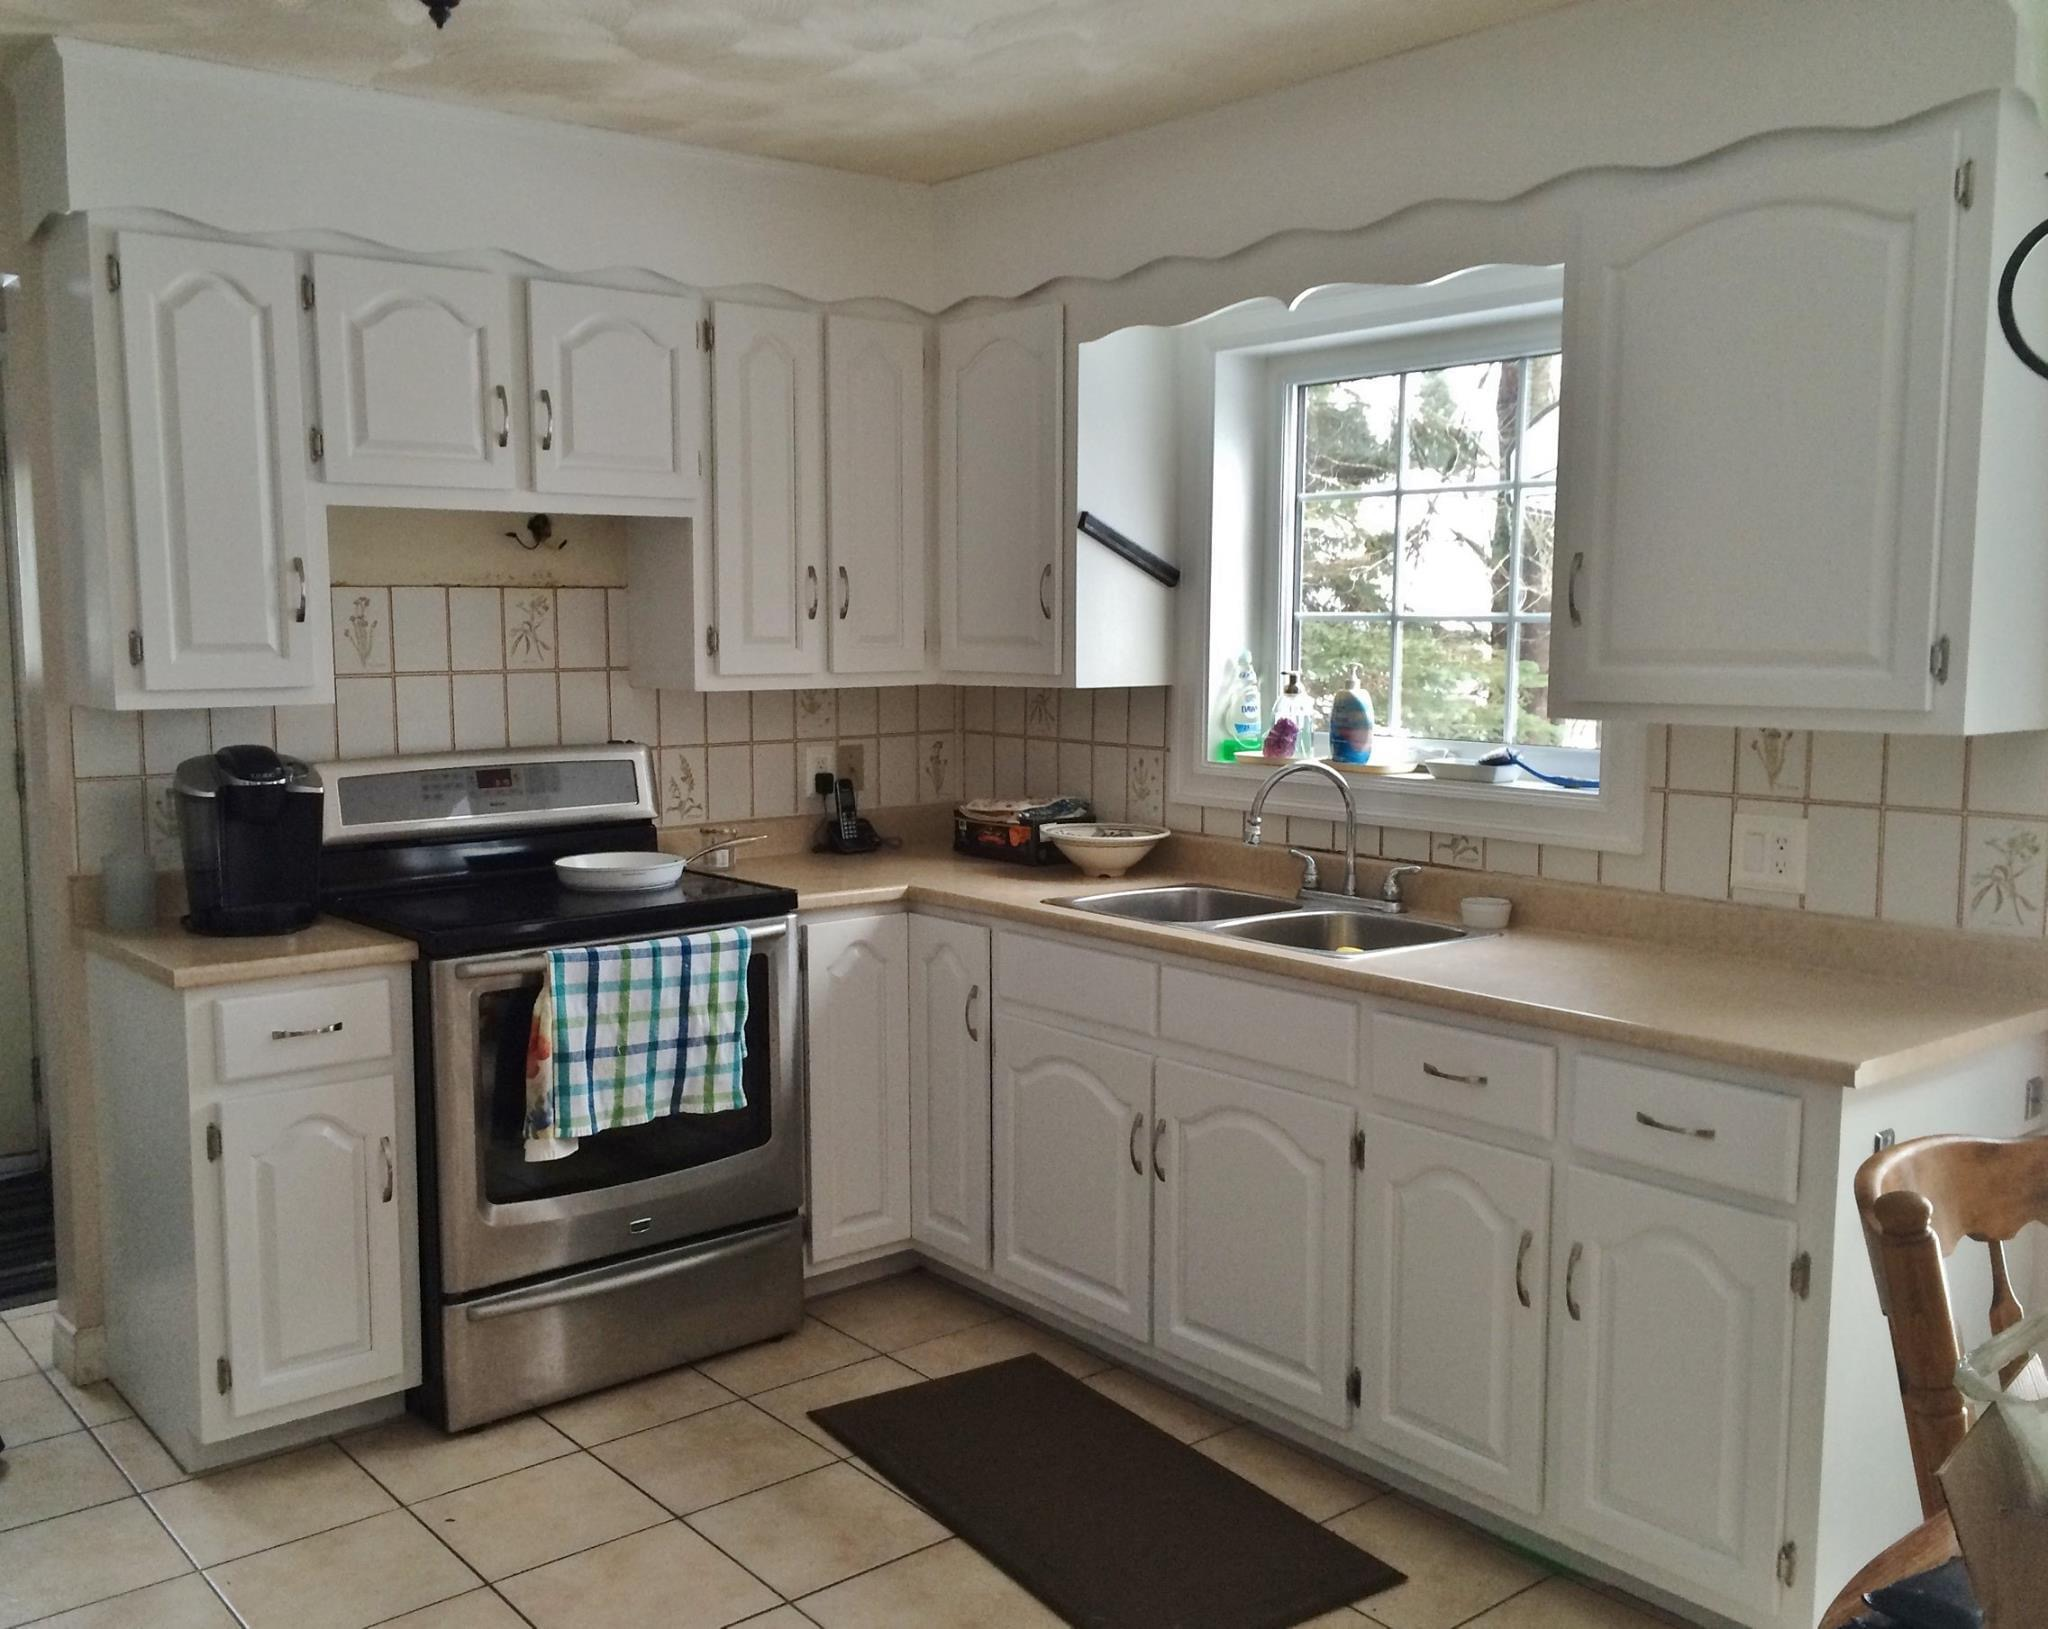 Kitchen Cabinet Before & After After